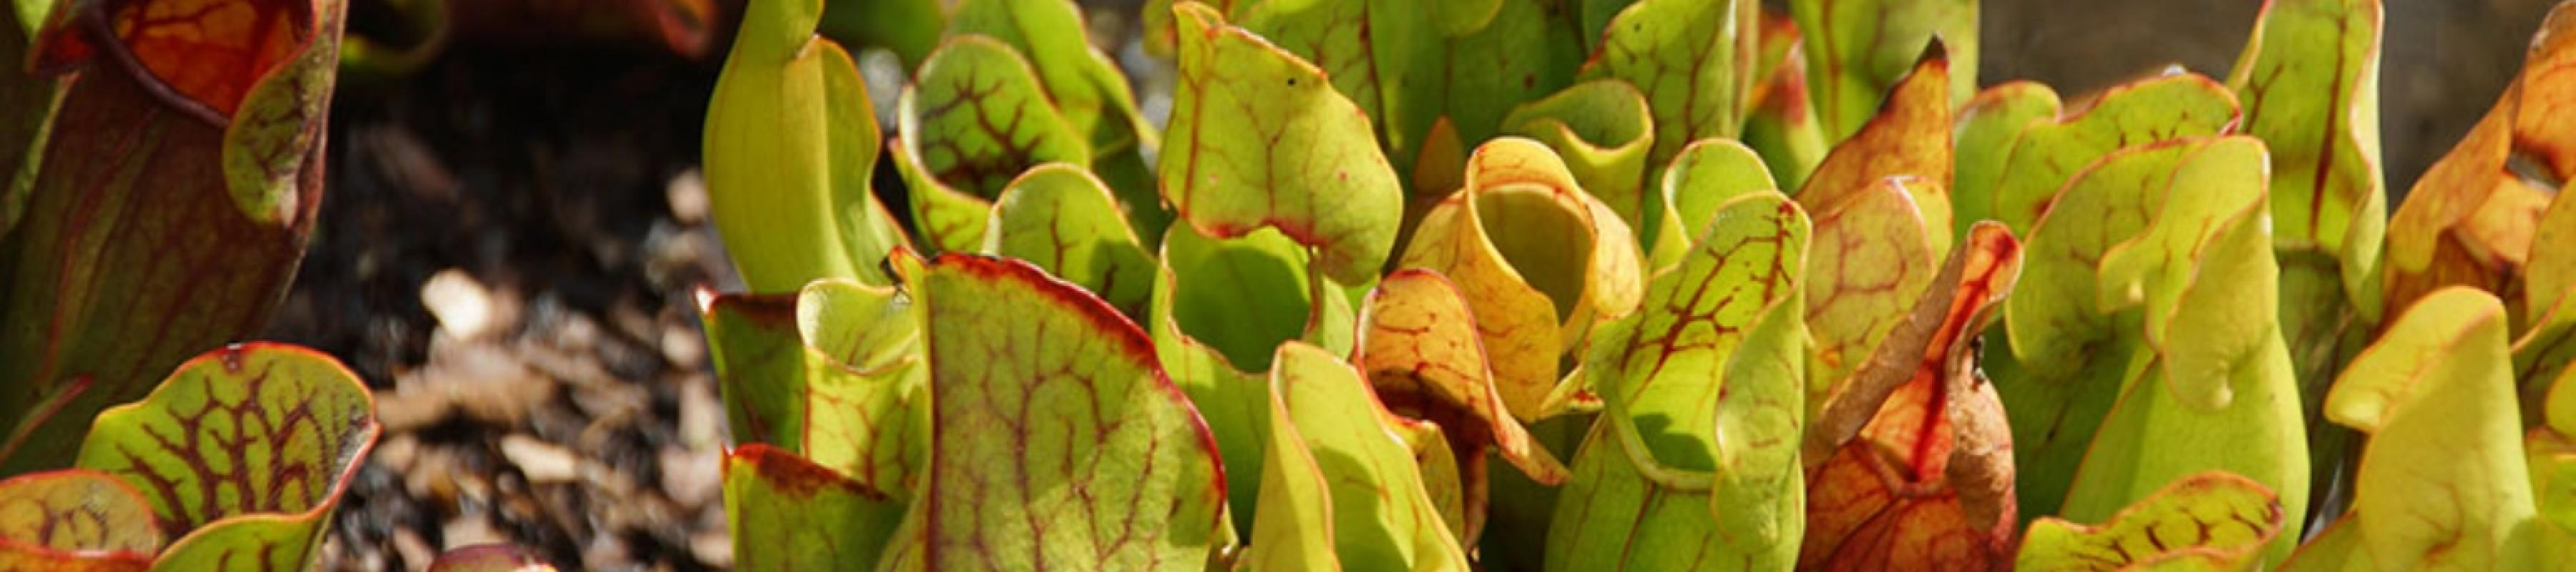 Modified, tubular leaves with hooded open lids of the purple pitcher plant